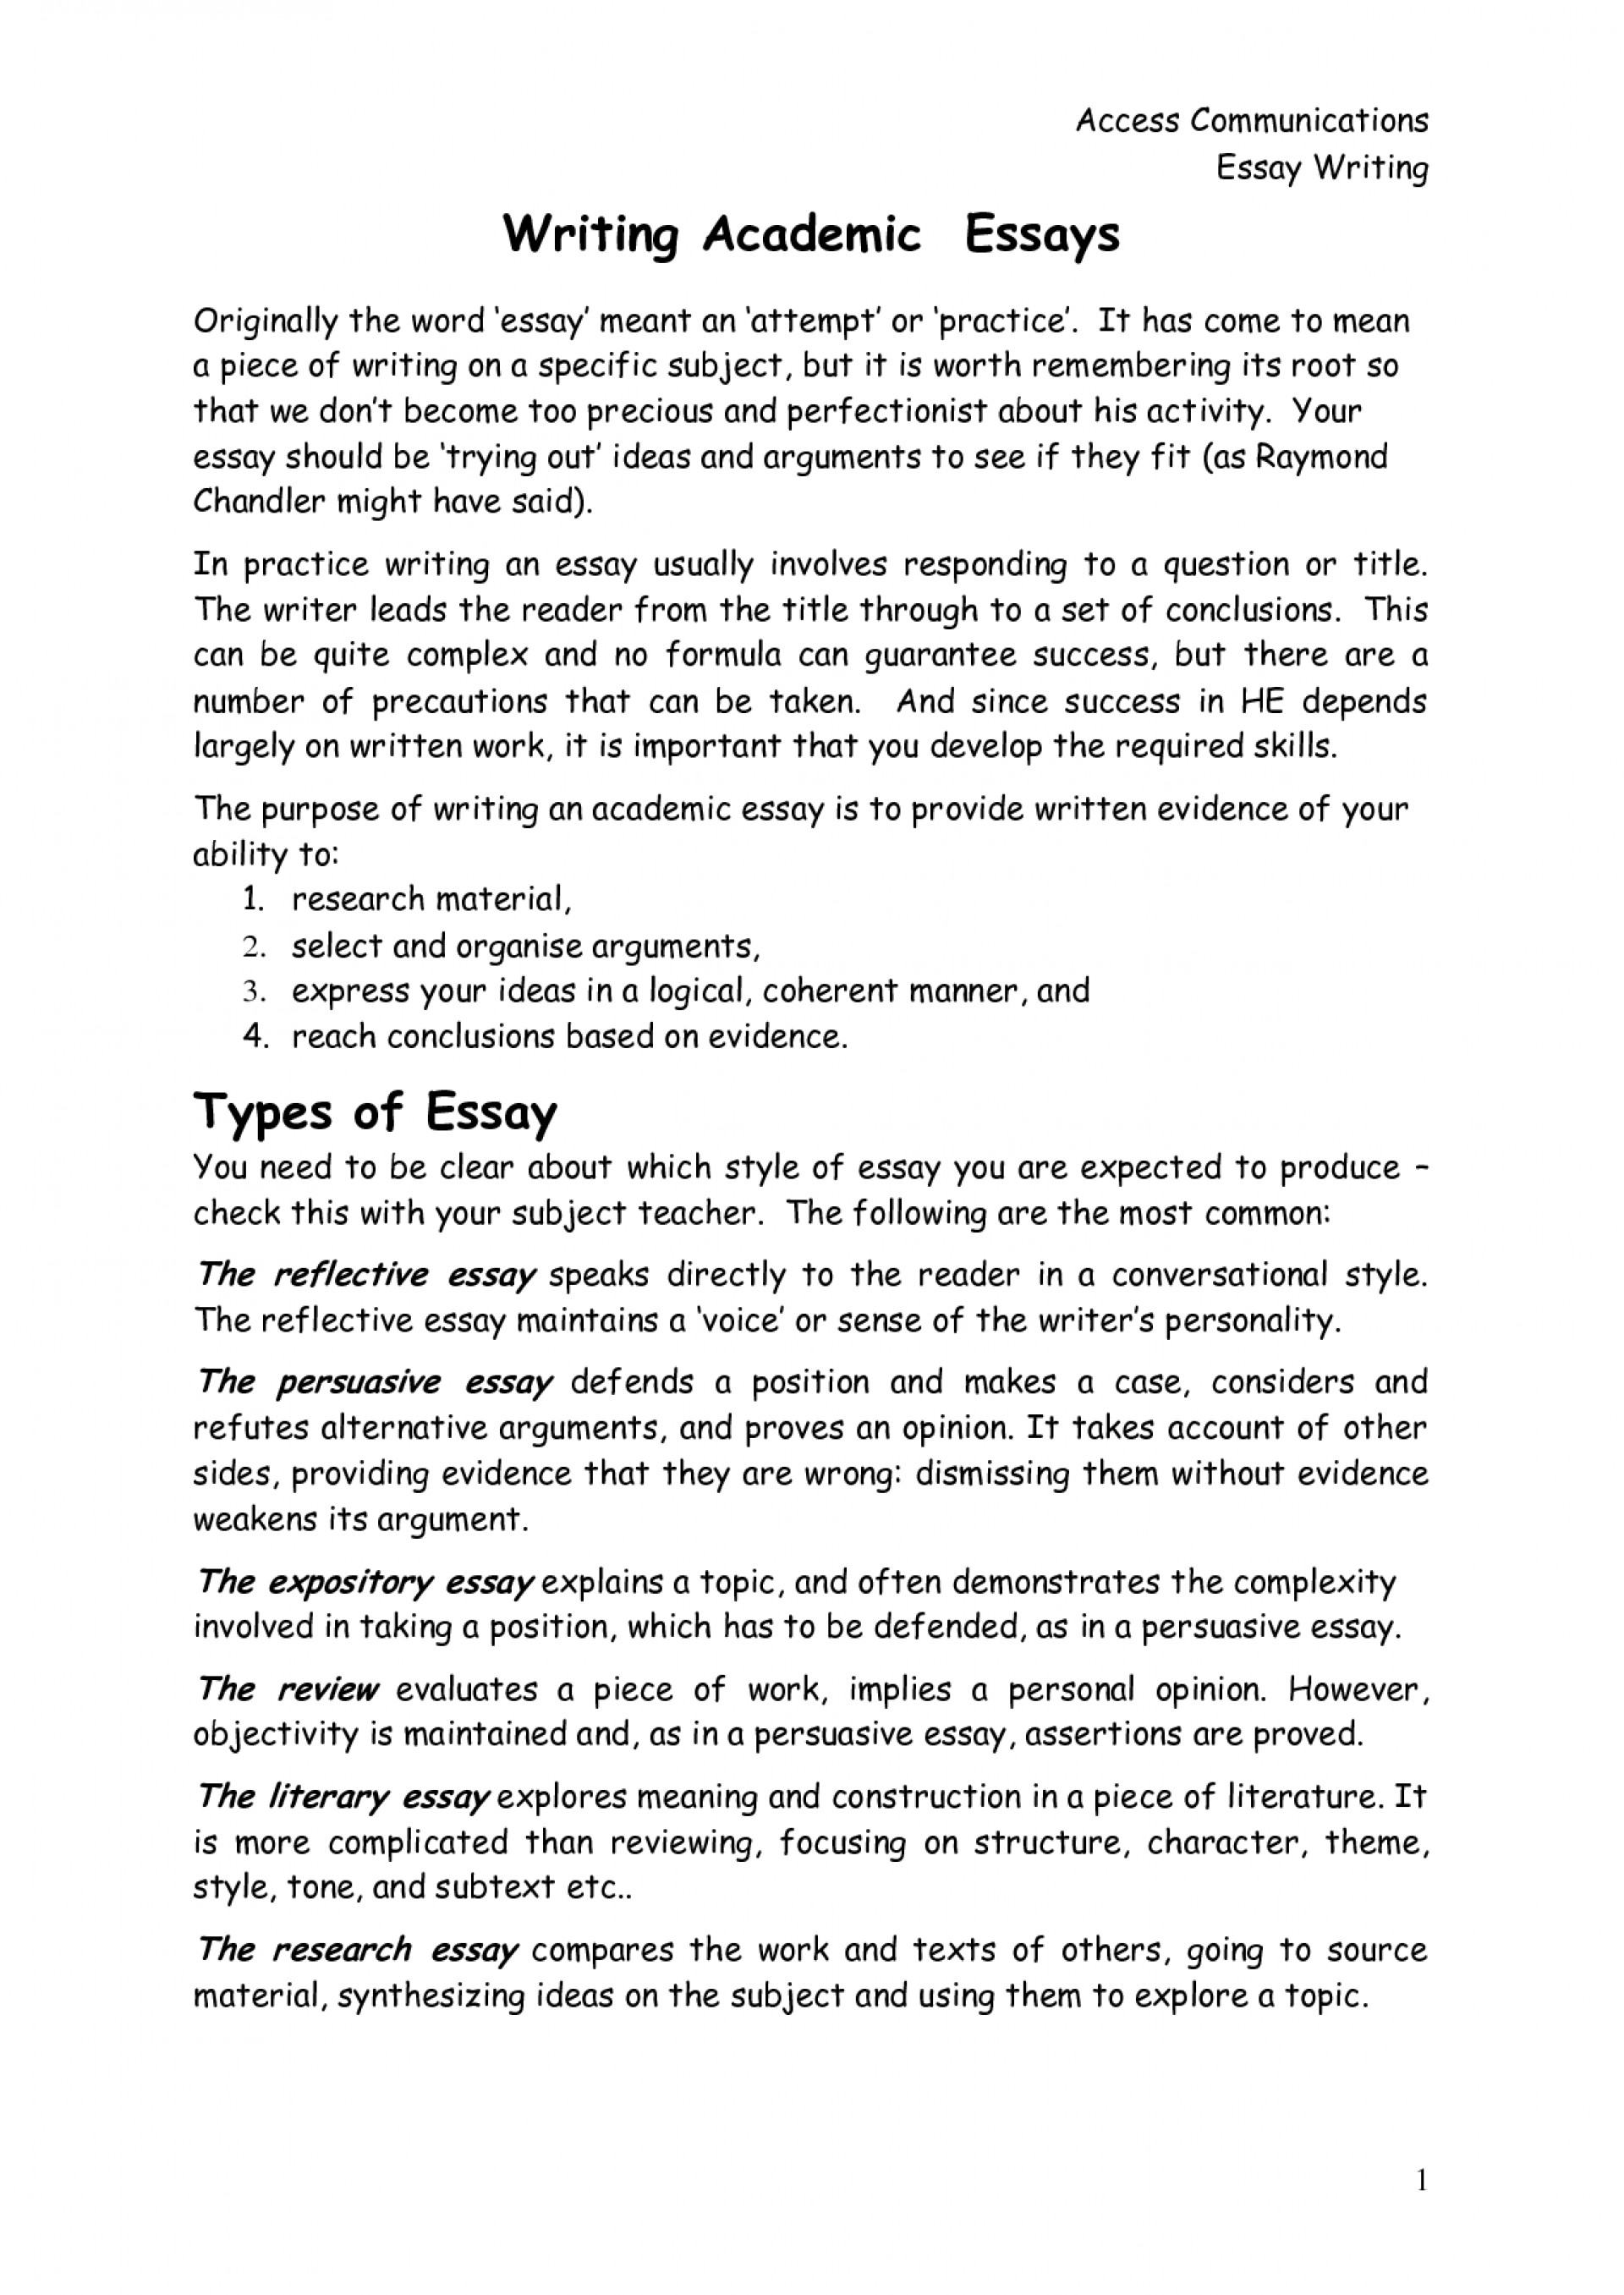 016 Reflective Essay On Academic Writings Beautiful Examples Writing Pdf College Sample 1920